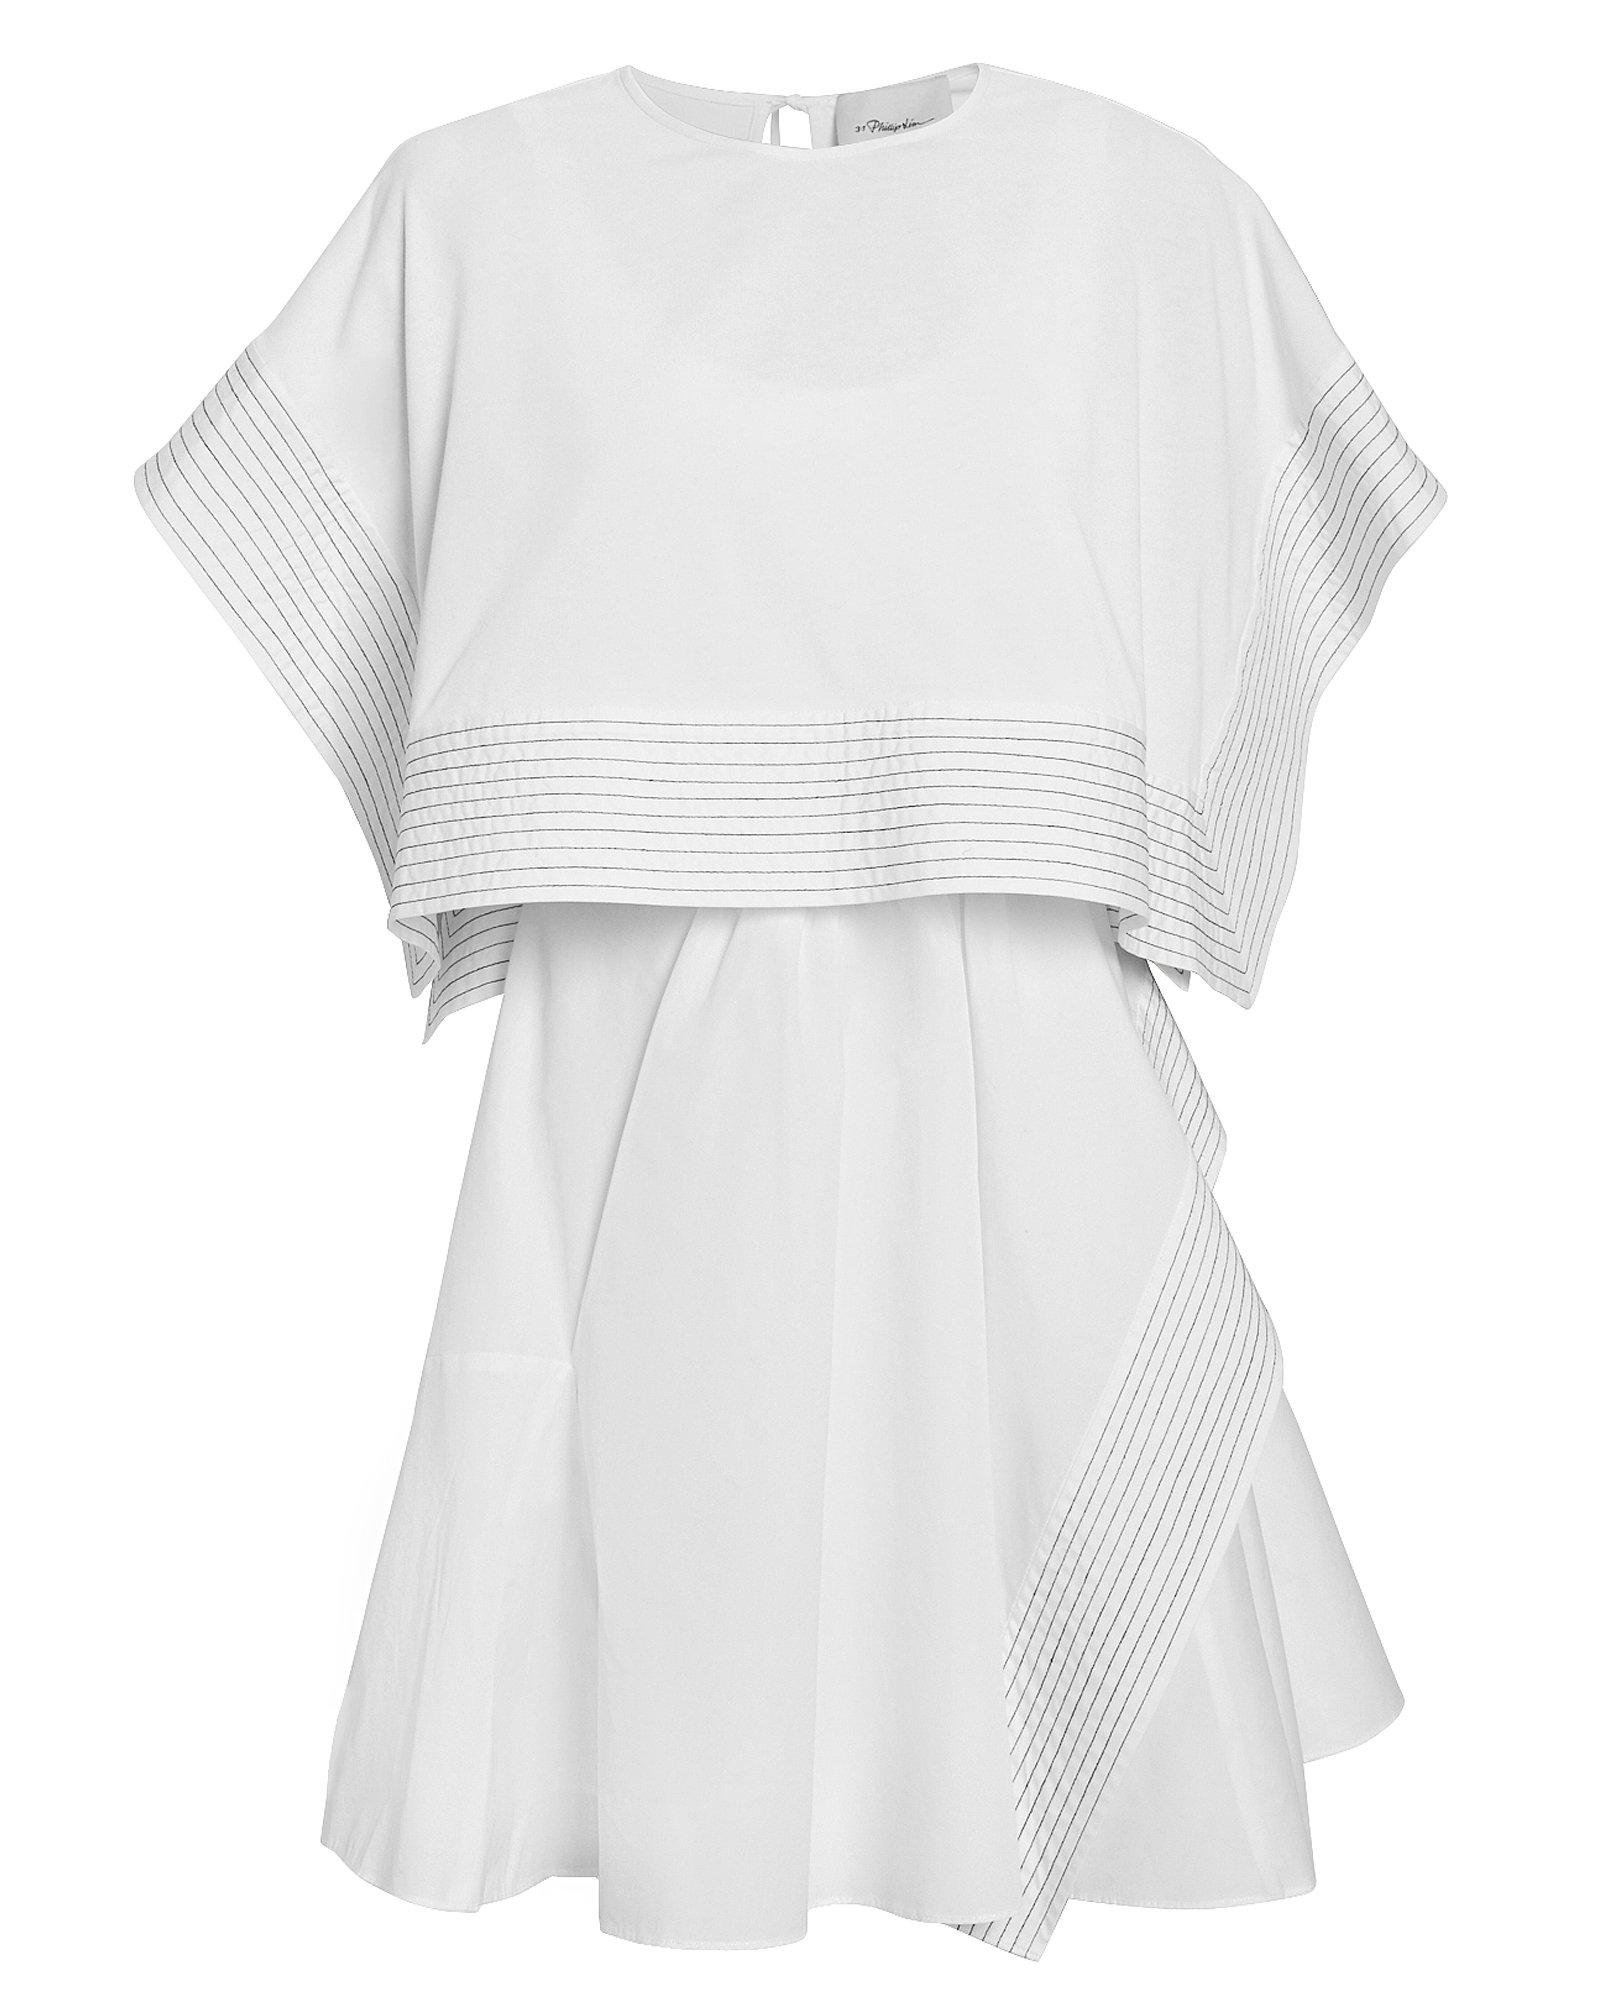 518cb4974c30e5 Lyst - 3.1 Phillip Lim Boxy Crop Top Mini Dress in White